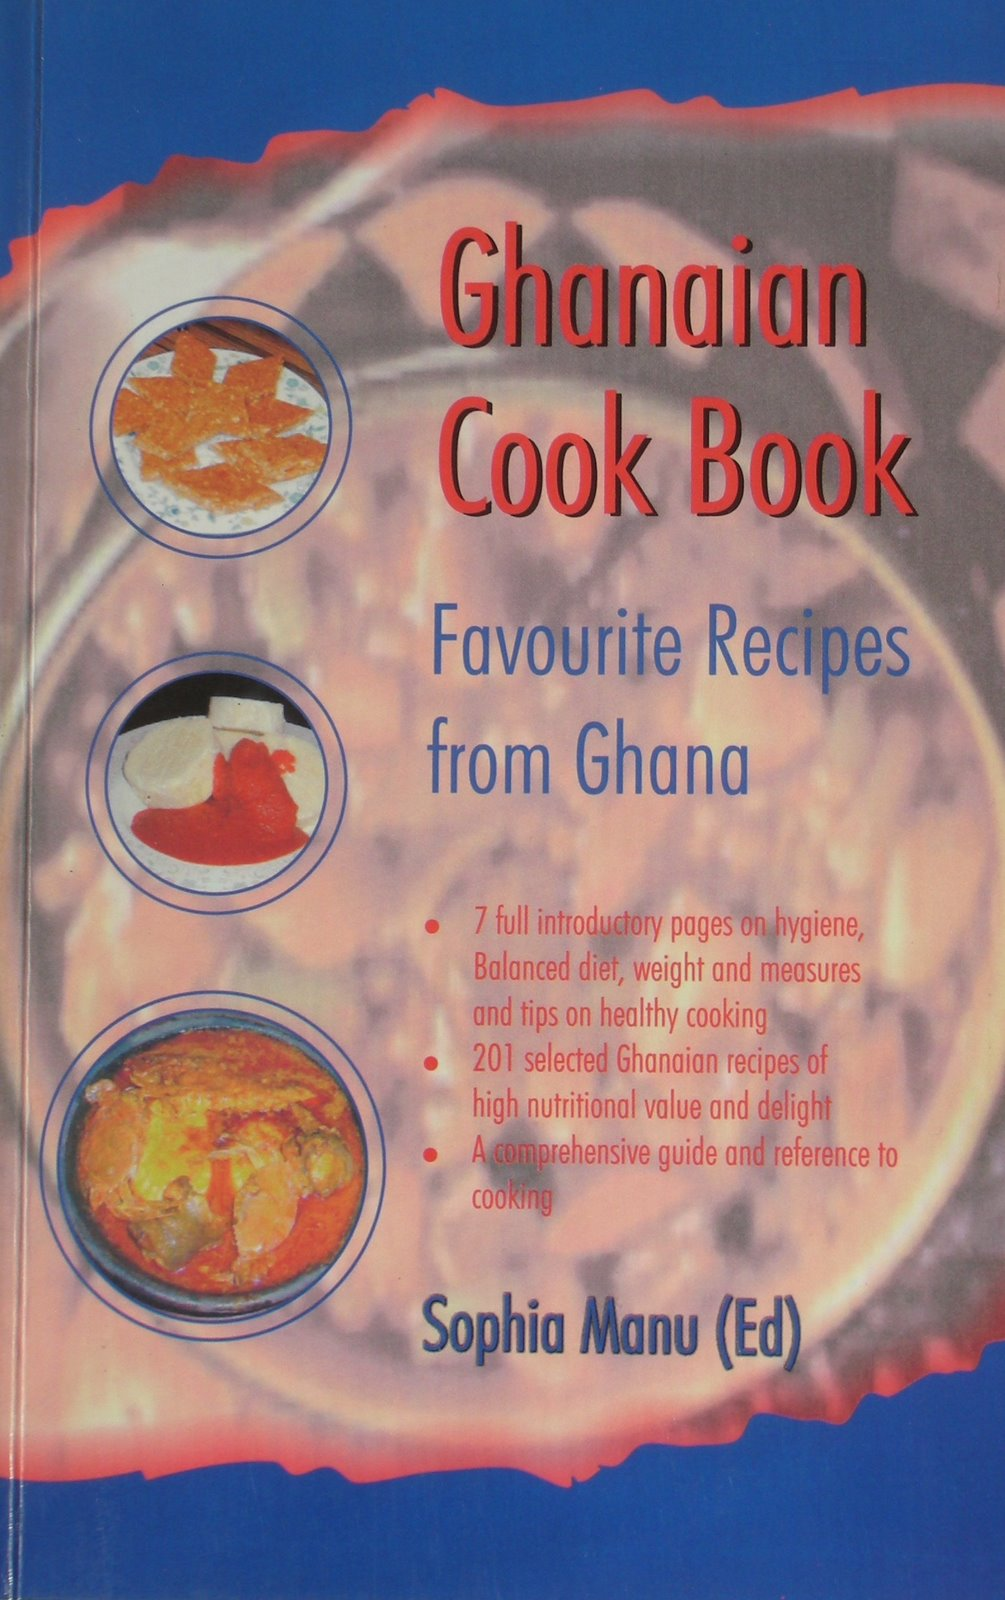 Betumiblog african cookbook project recent ghanaian cookbooks im sure issues of indexes tables of contents organization measurement information copy editing food photography special ingredients forumfinder Choice Image